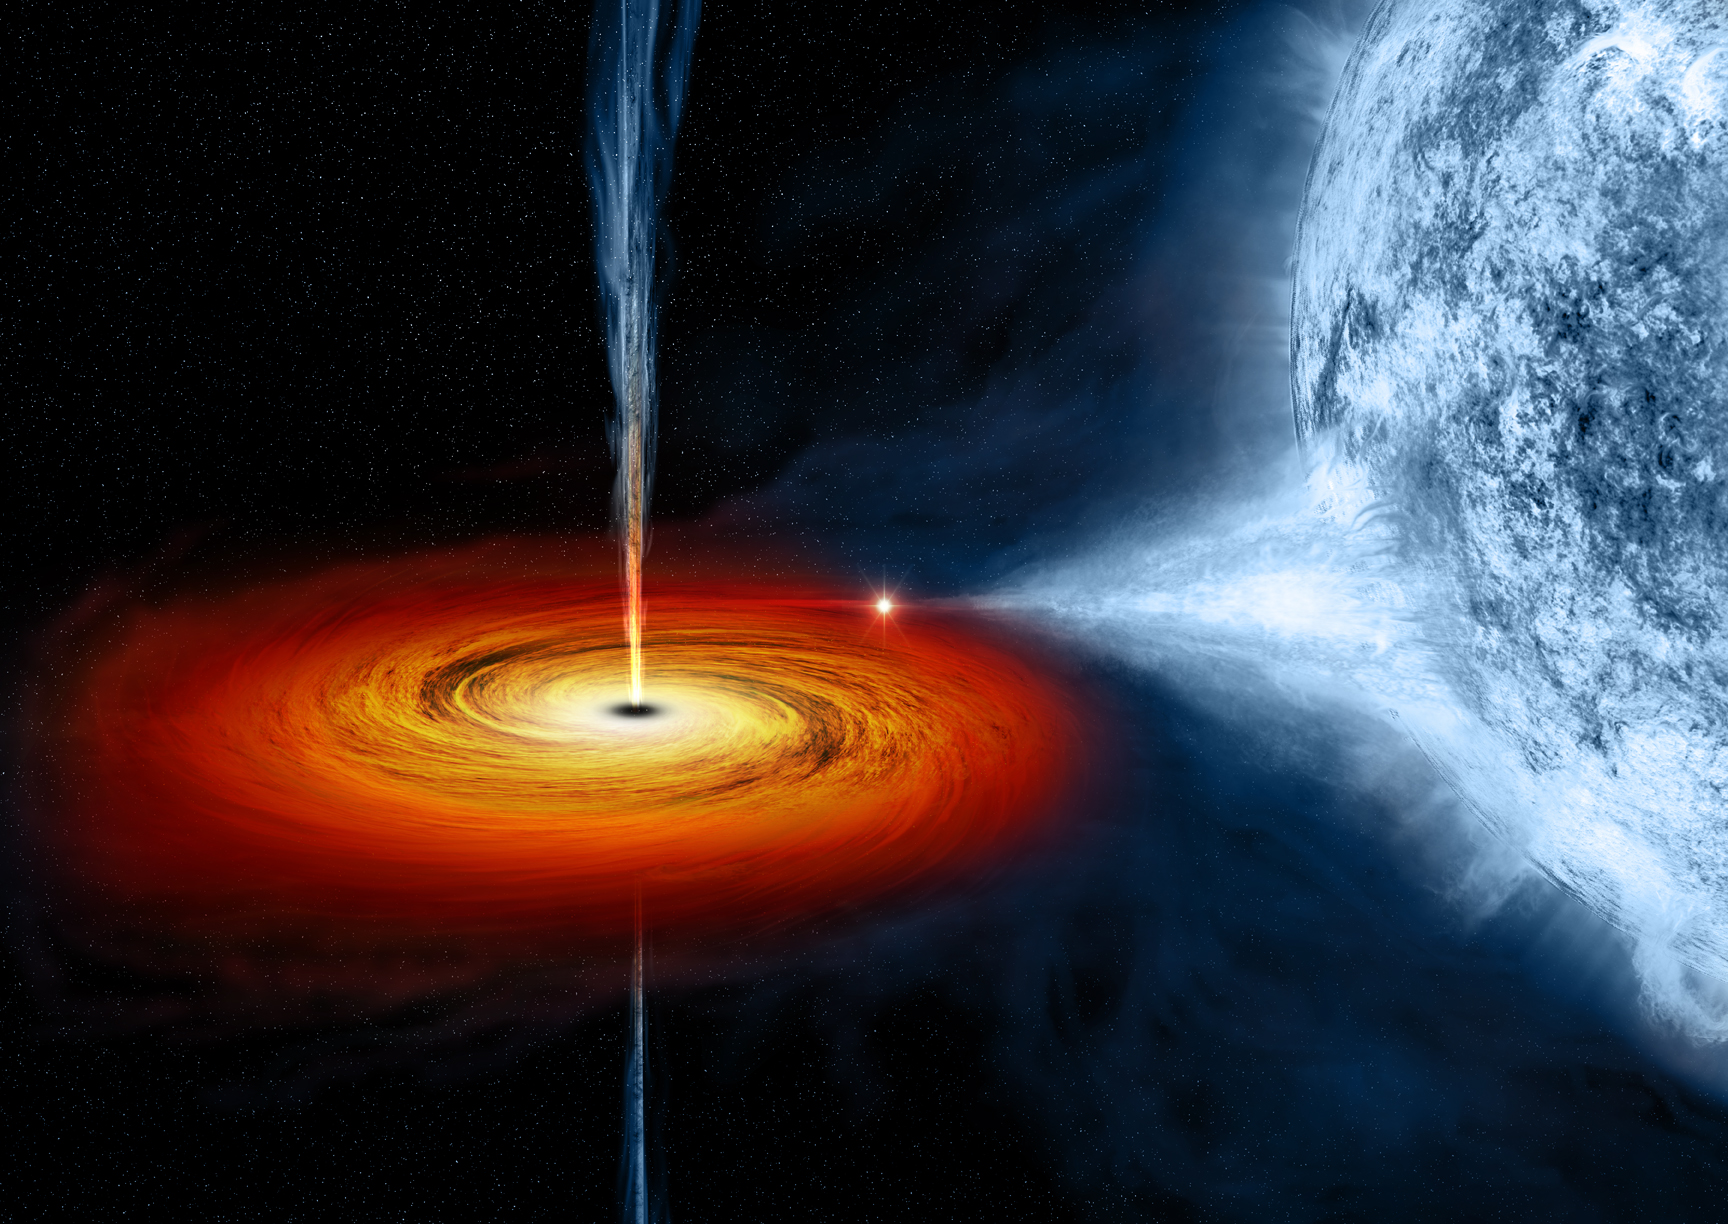 star caved in  This black hole pulls matter from blue star beside itNasa Black Hole Eats Star